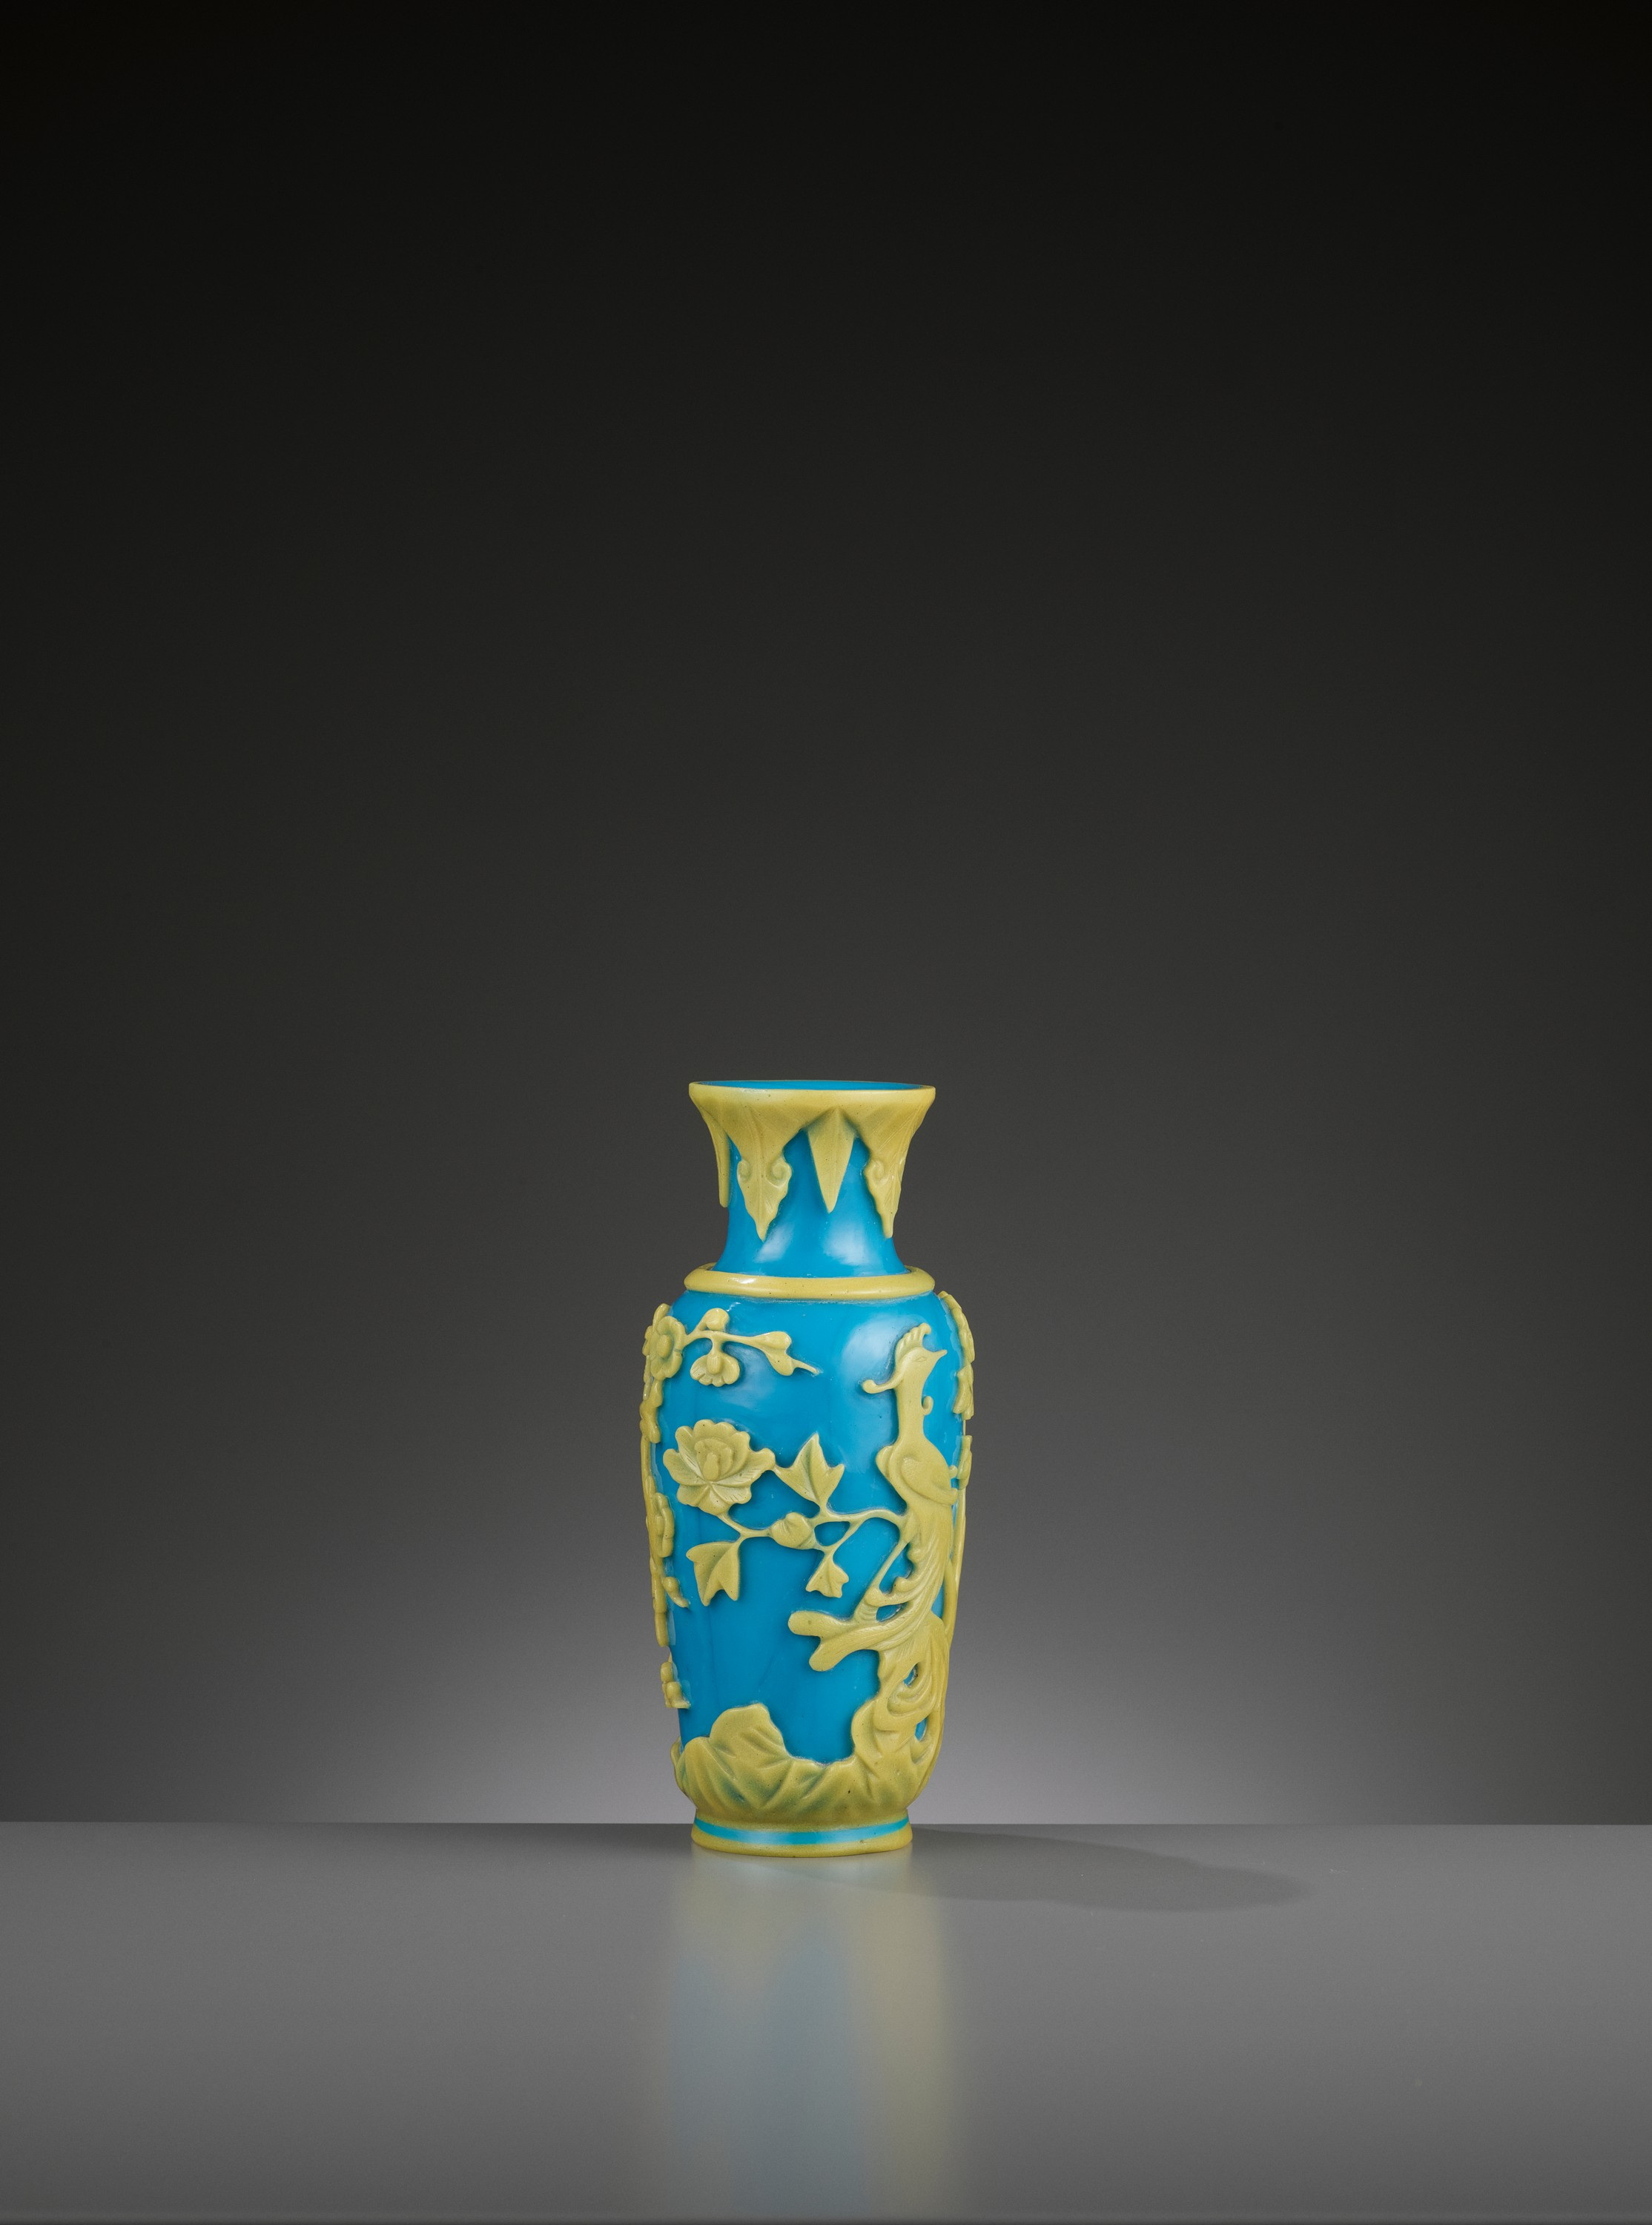 A YELLOW OVERLAY TURQUOISE GLASS VASE, TONGZHI MARK AND PERIOD - Image 6 of 9